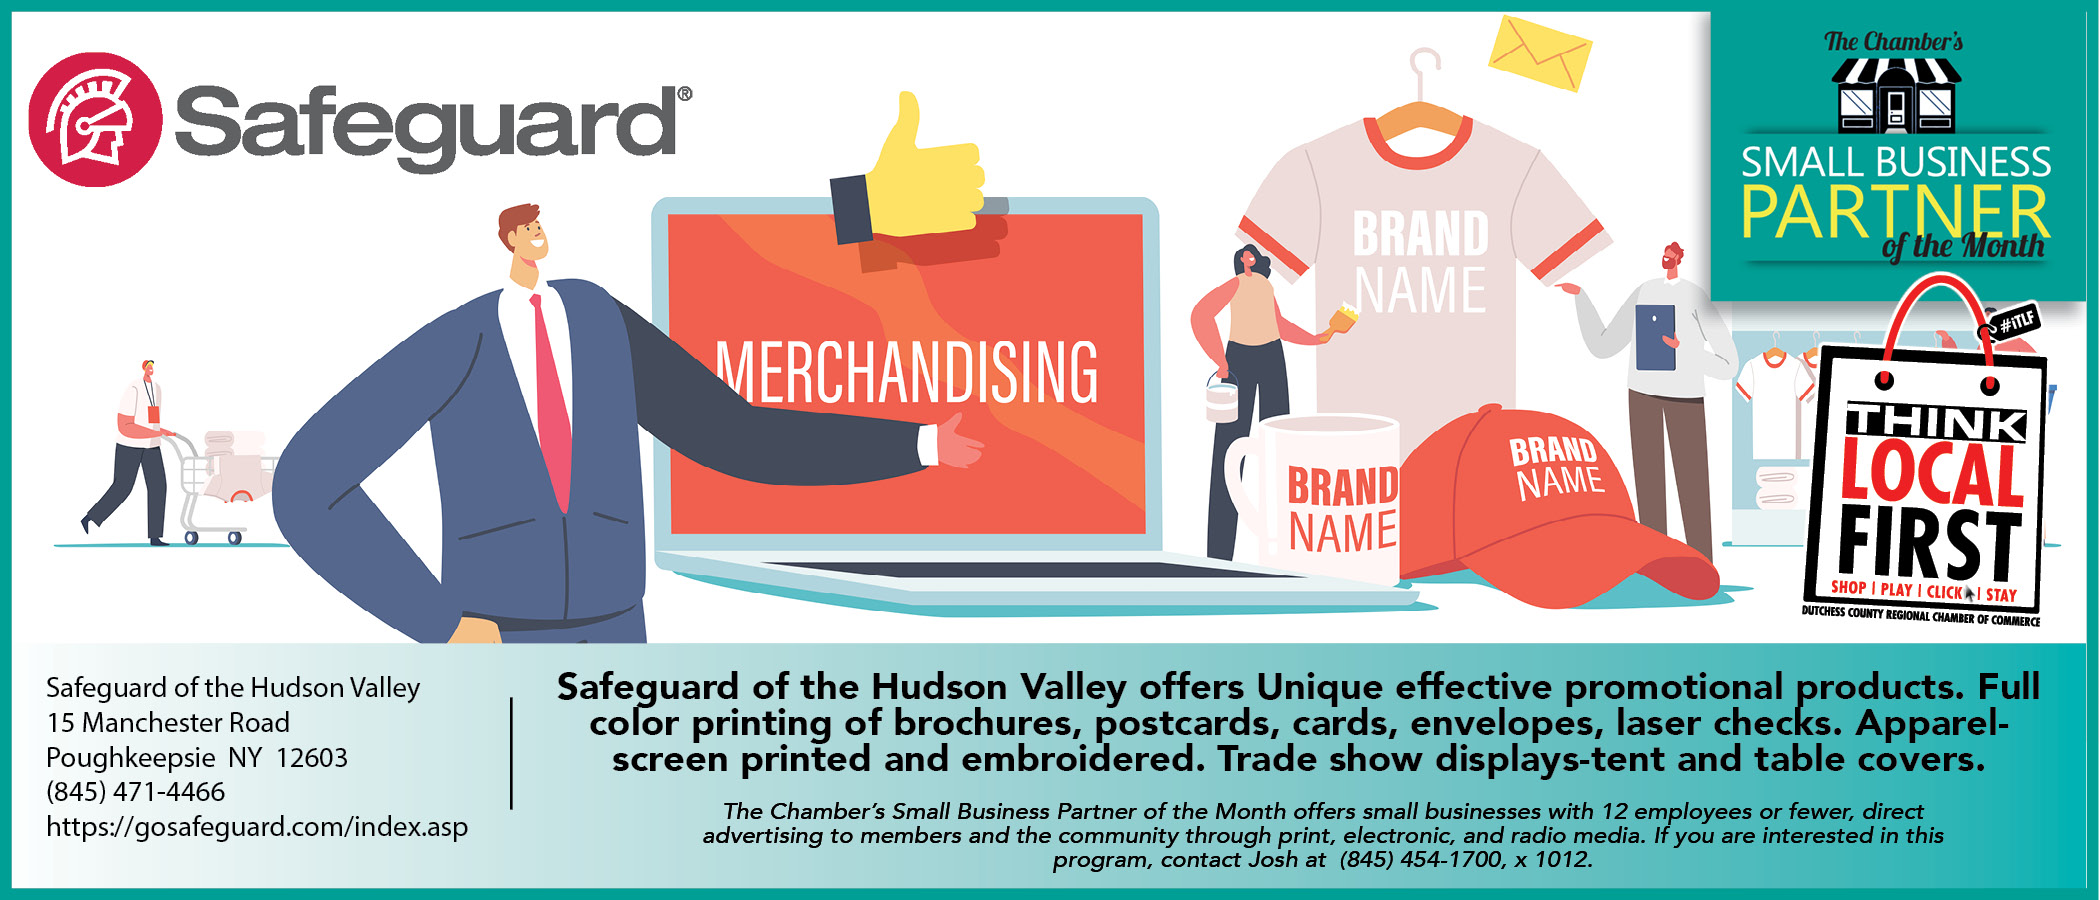 This is an advertisement for the Chamber's small business Partner of the month, a program that small businesses can take advantage of if they are members. Click here to visit Safeguard website.